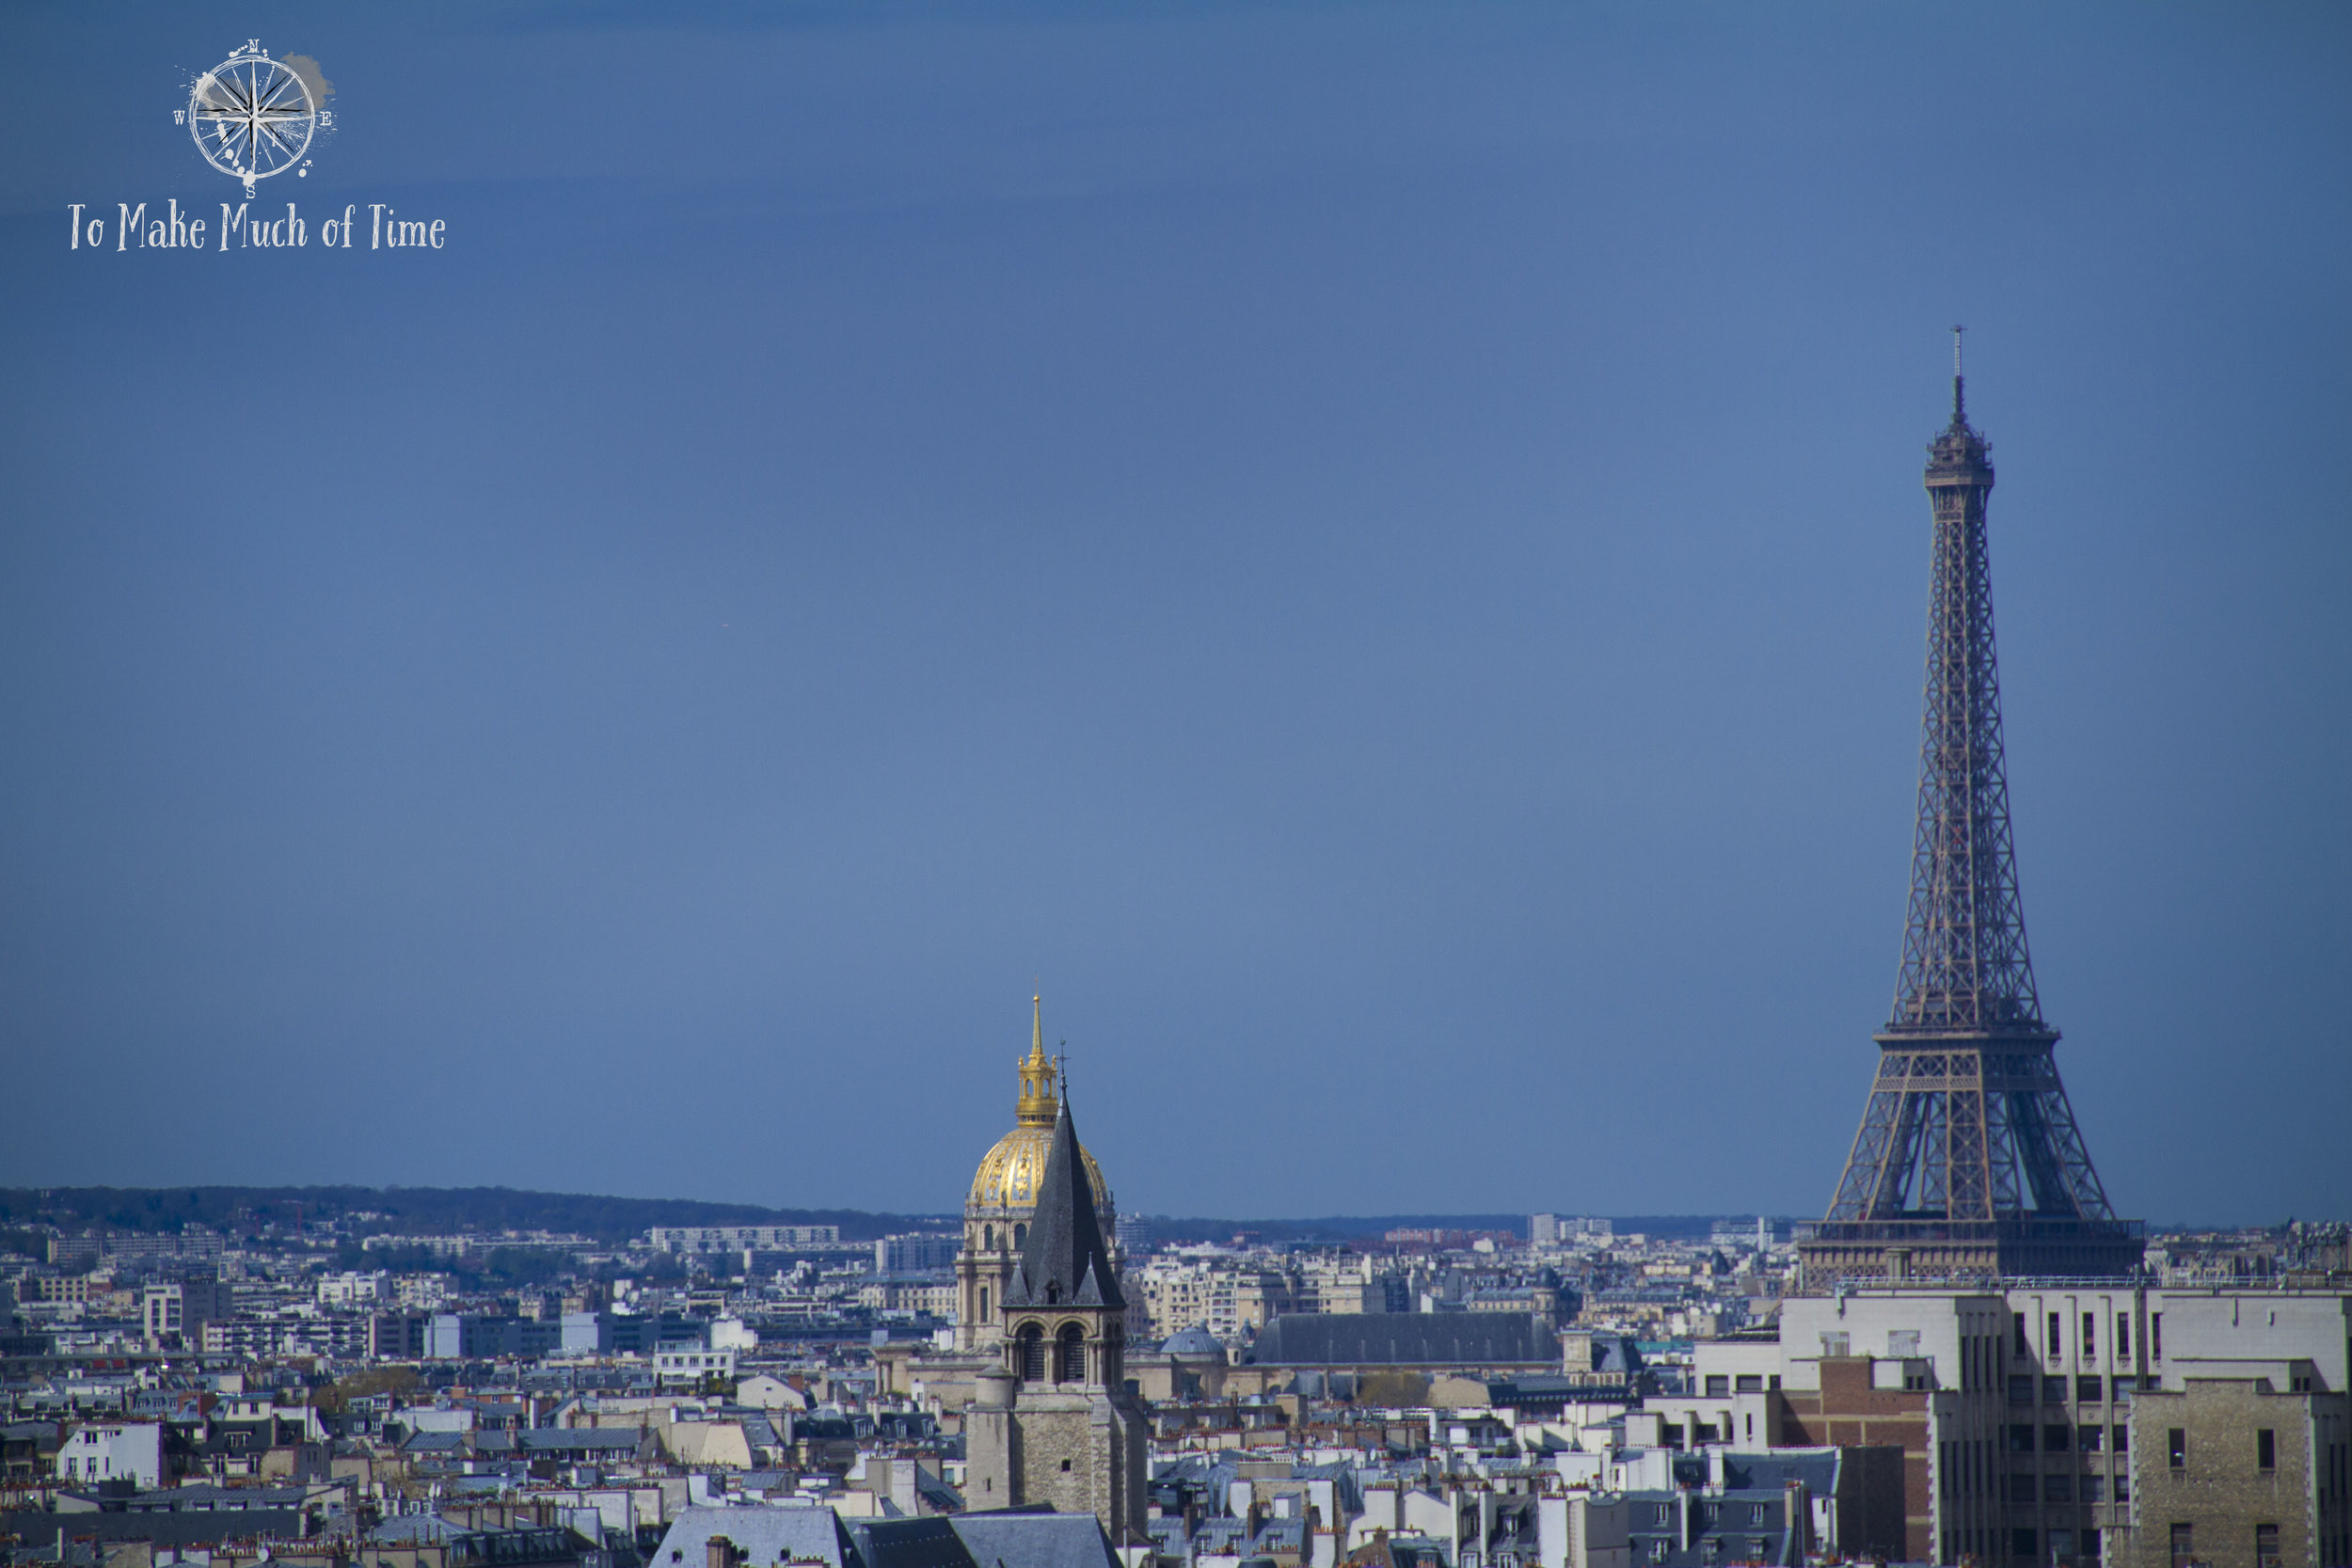 Probably our best view of the Eiffel Tower was from the top of Notre Dame.